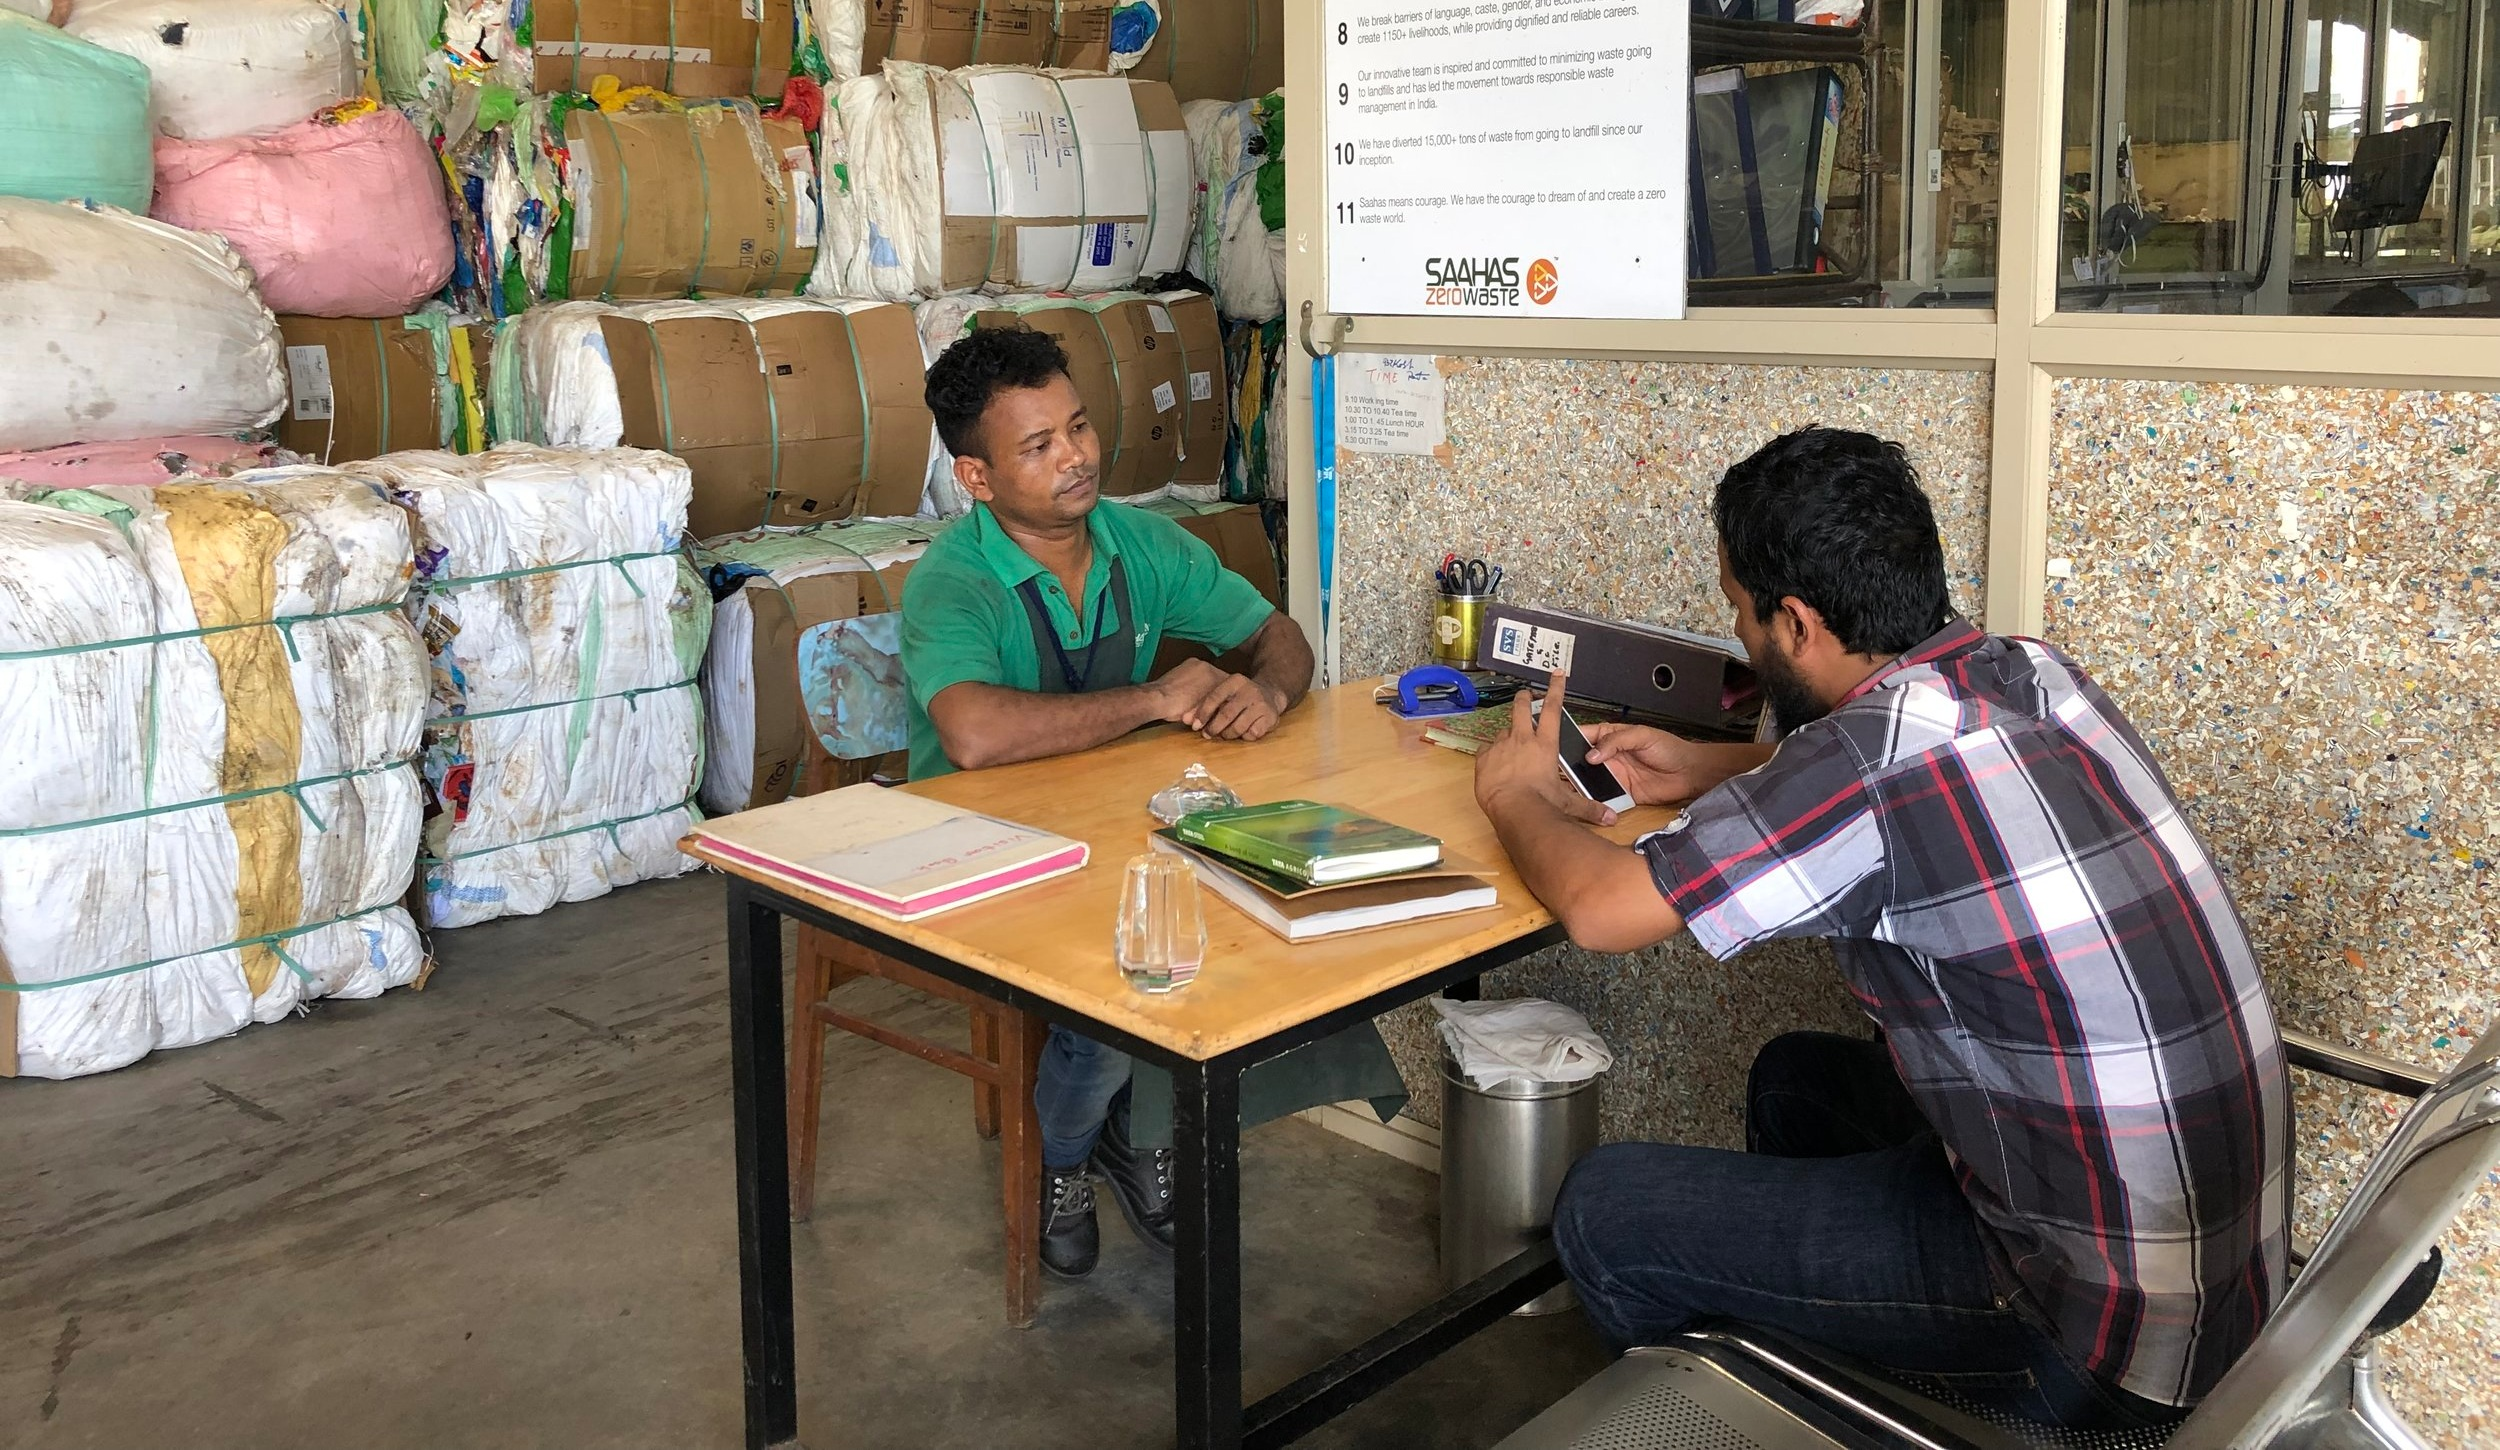 Jobholder surveys being conducted with Saahas Waste Management in Bangalore